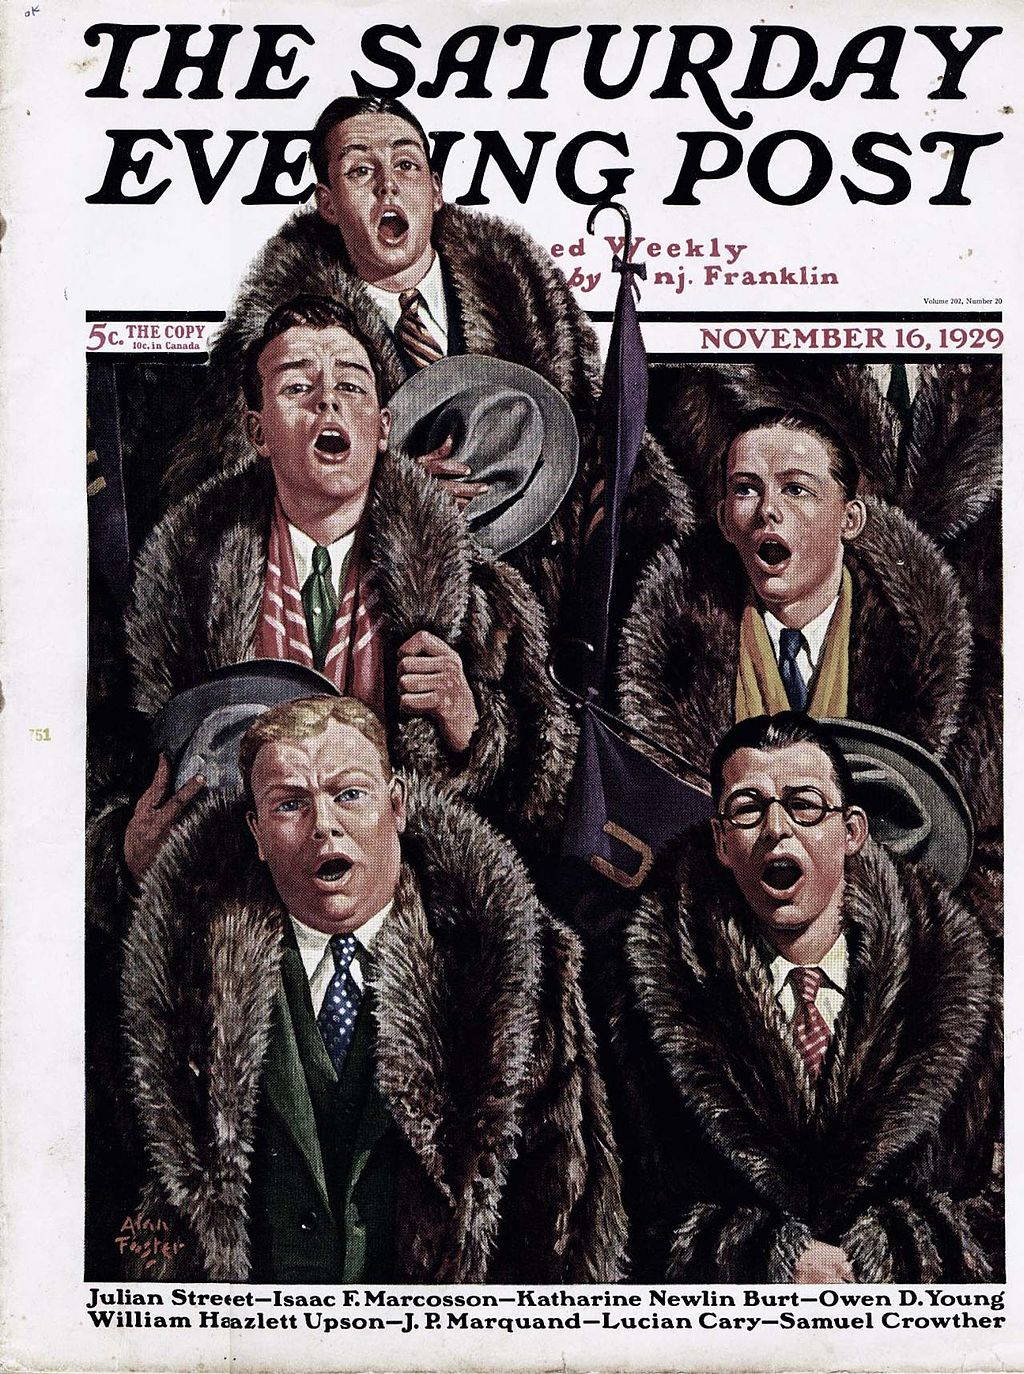 3e1ace49d27 Wildly expensive raccoon fur coats swept college campuses in the 1920s, a  trend illustrated here on the cover of a magazine from 1929.